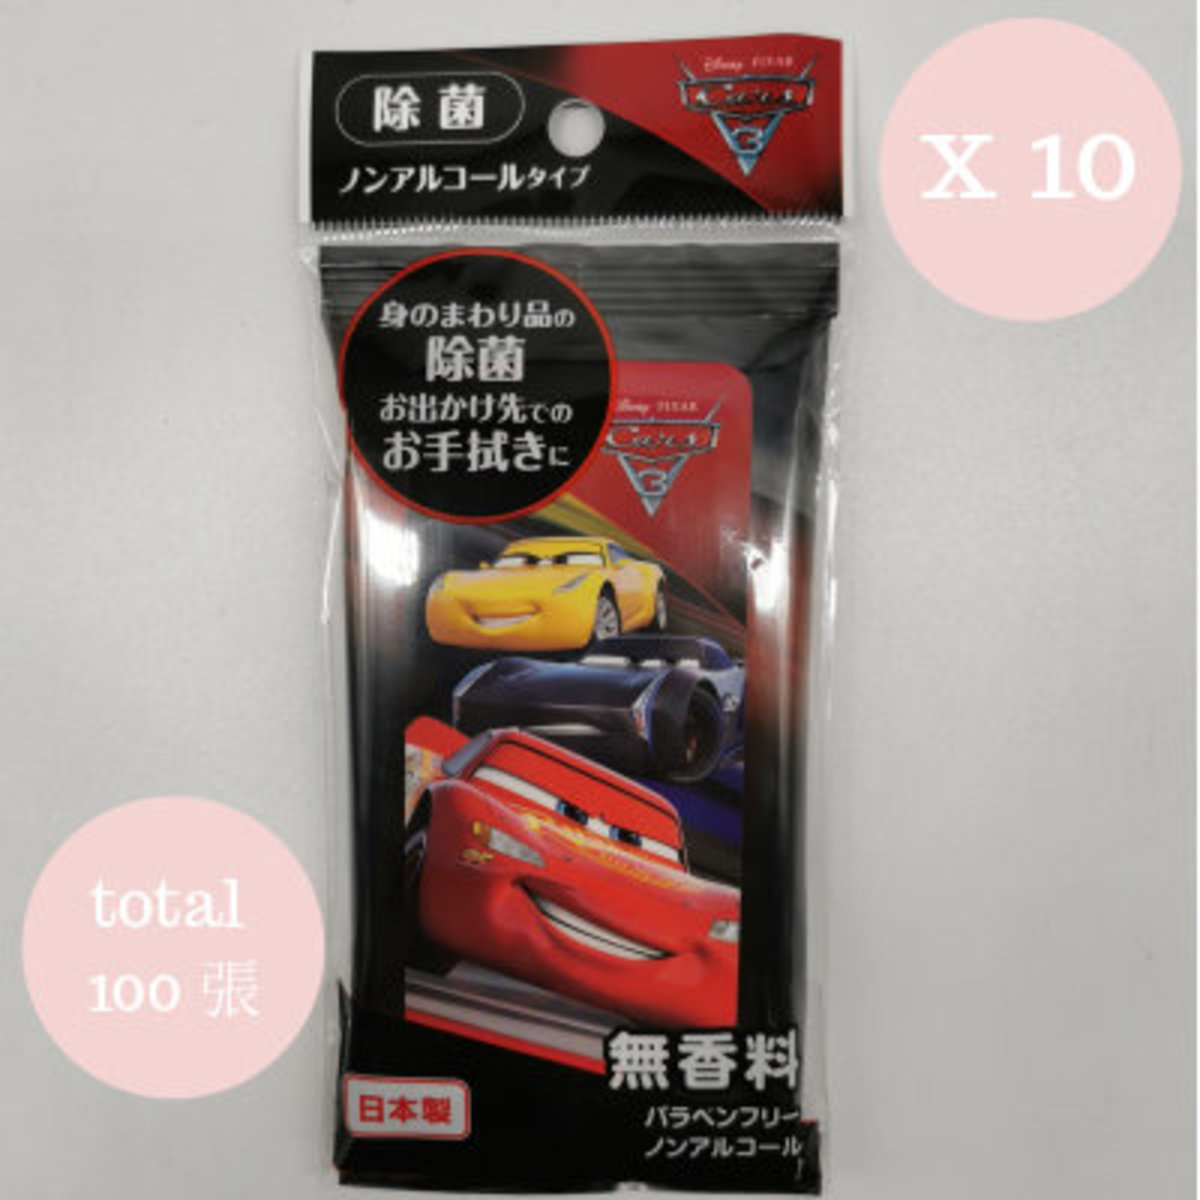 Made in Japan Cars Sterilized Wipes Fragrance Free 10pcs x 10pack